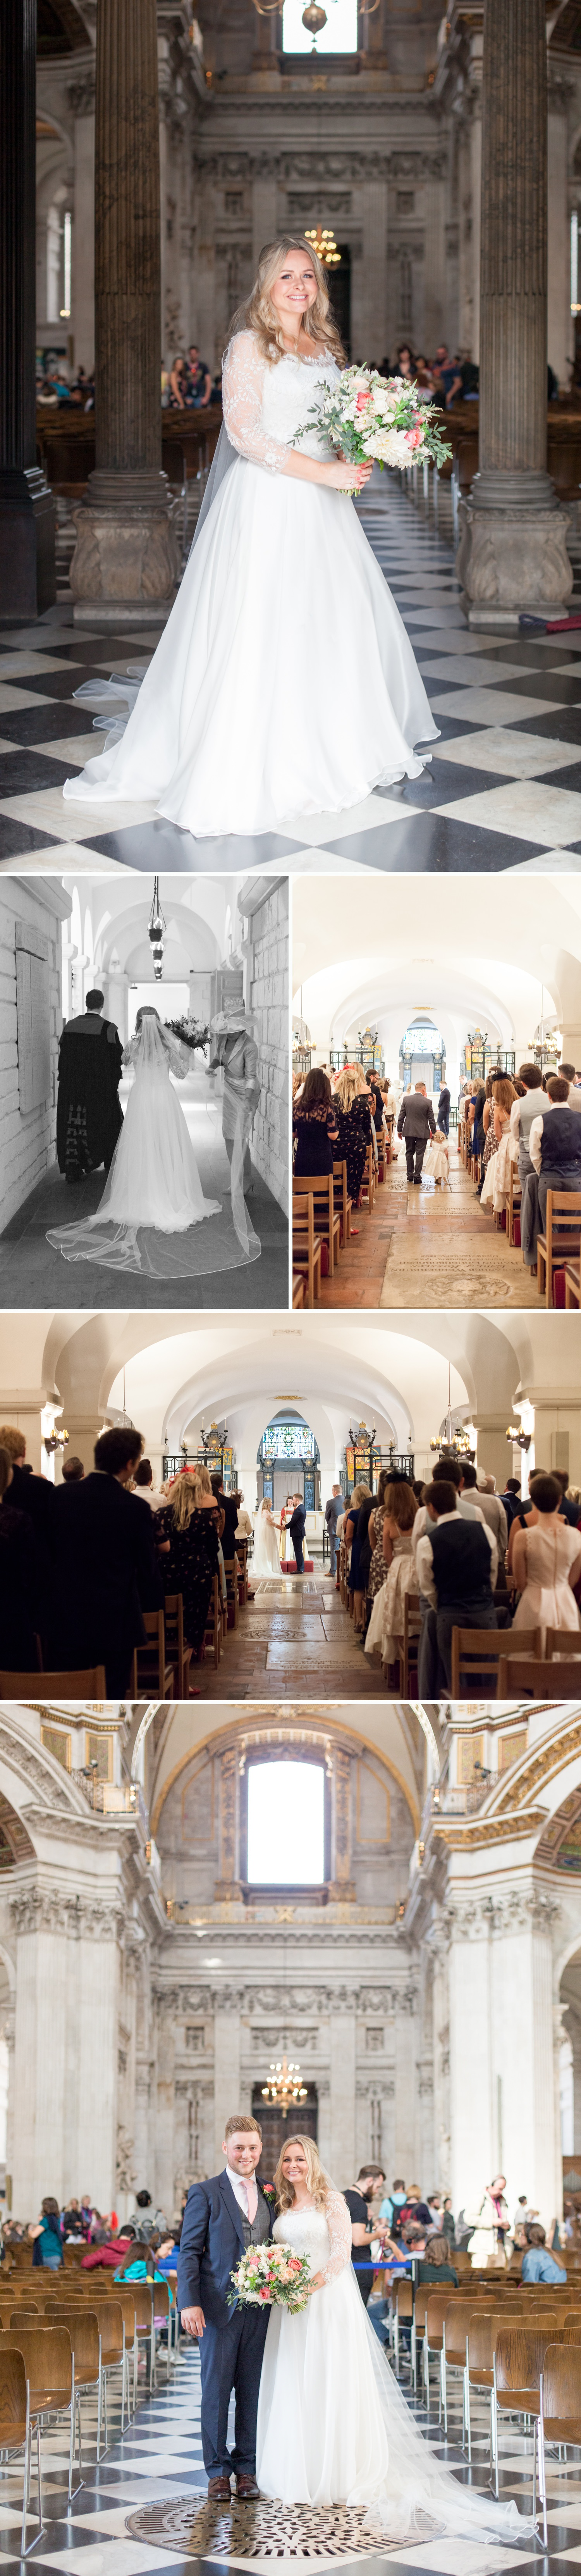 Charlotte & Adam's St. Paul's Cathedral wedding - a couple marry in the CBE chapel